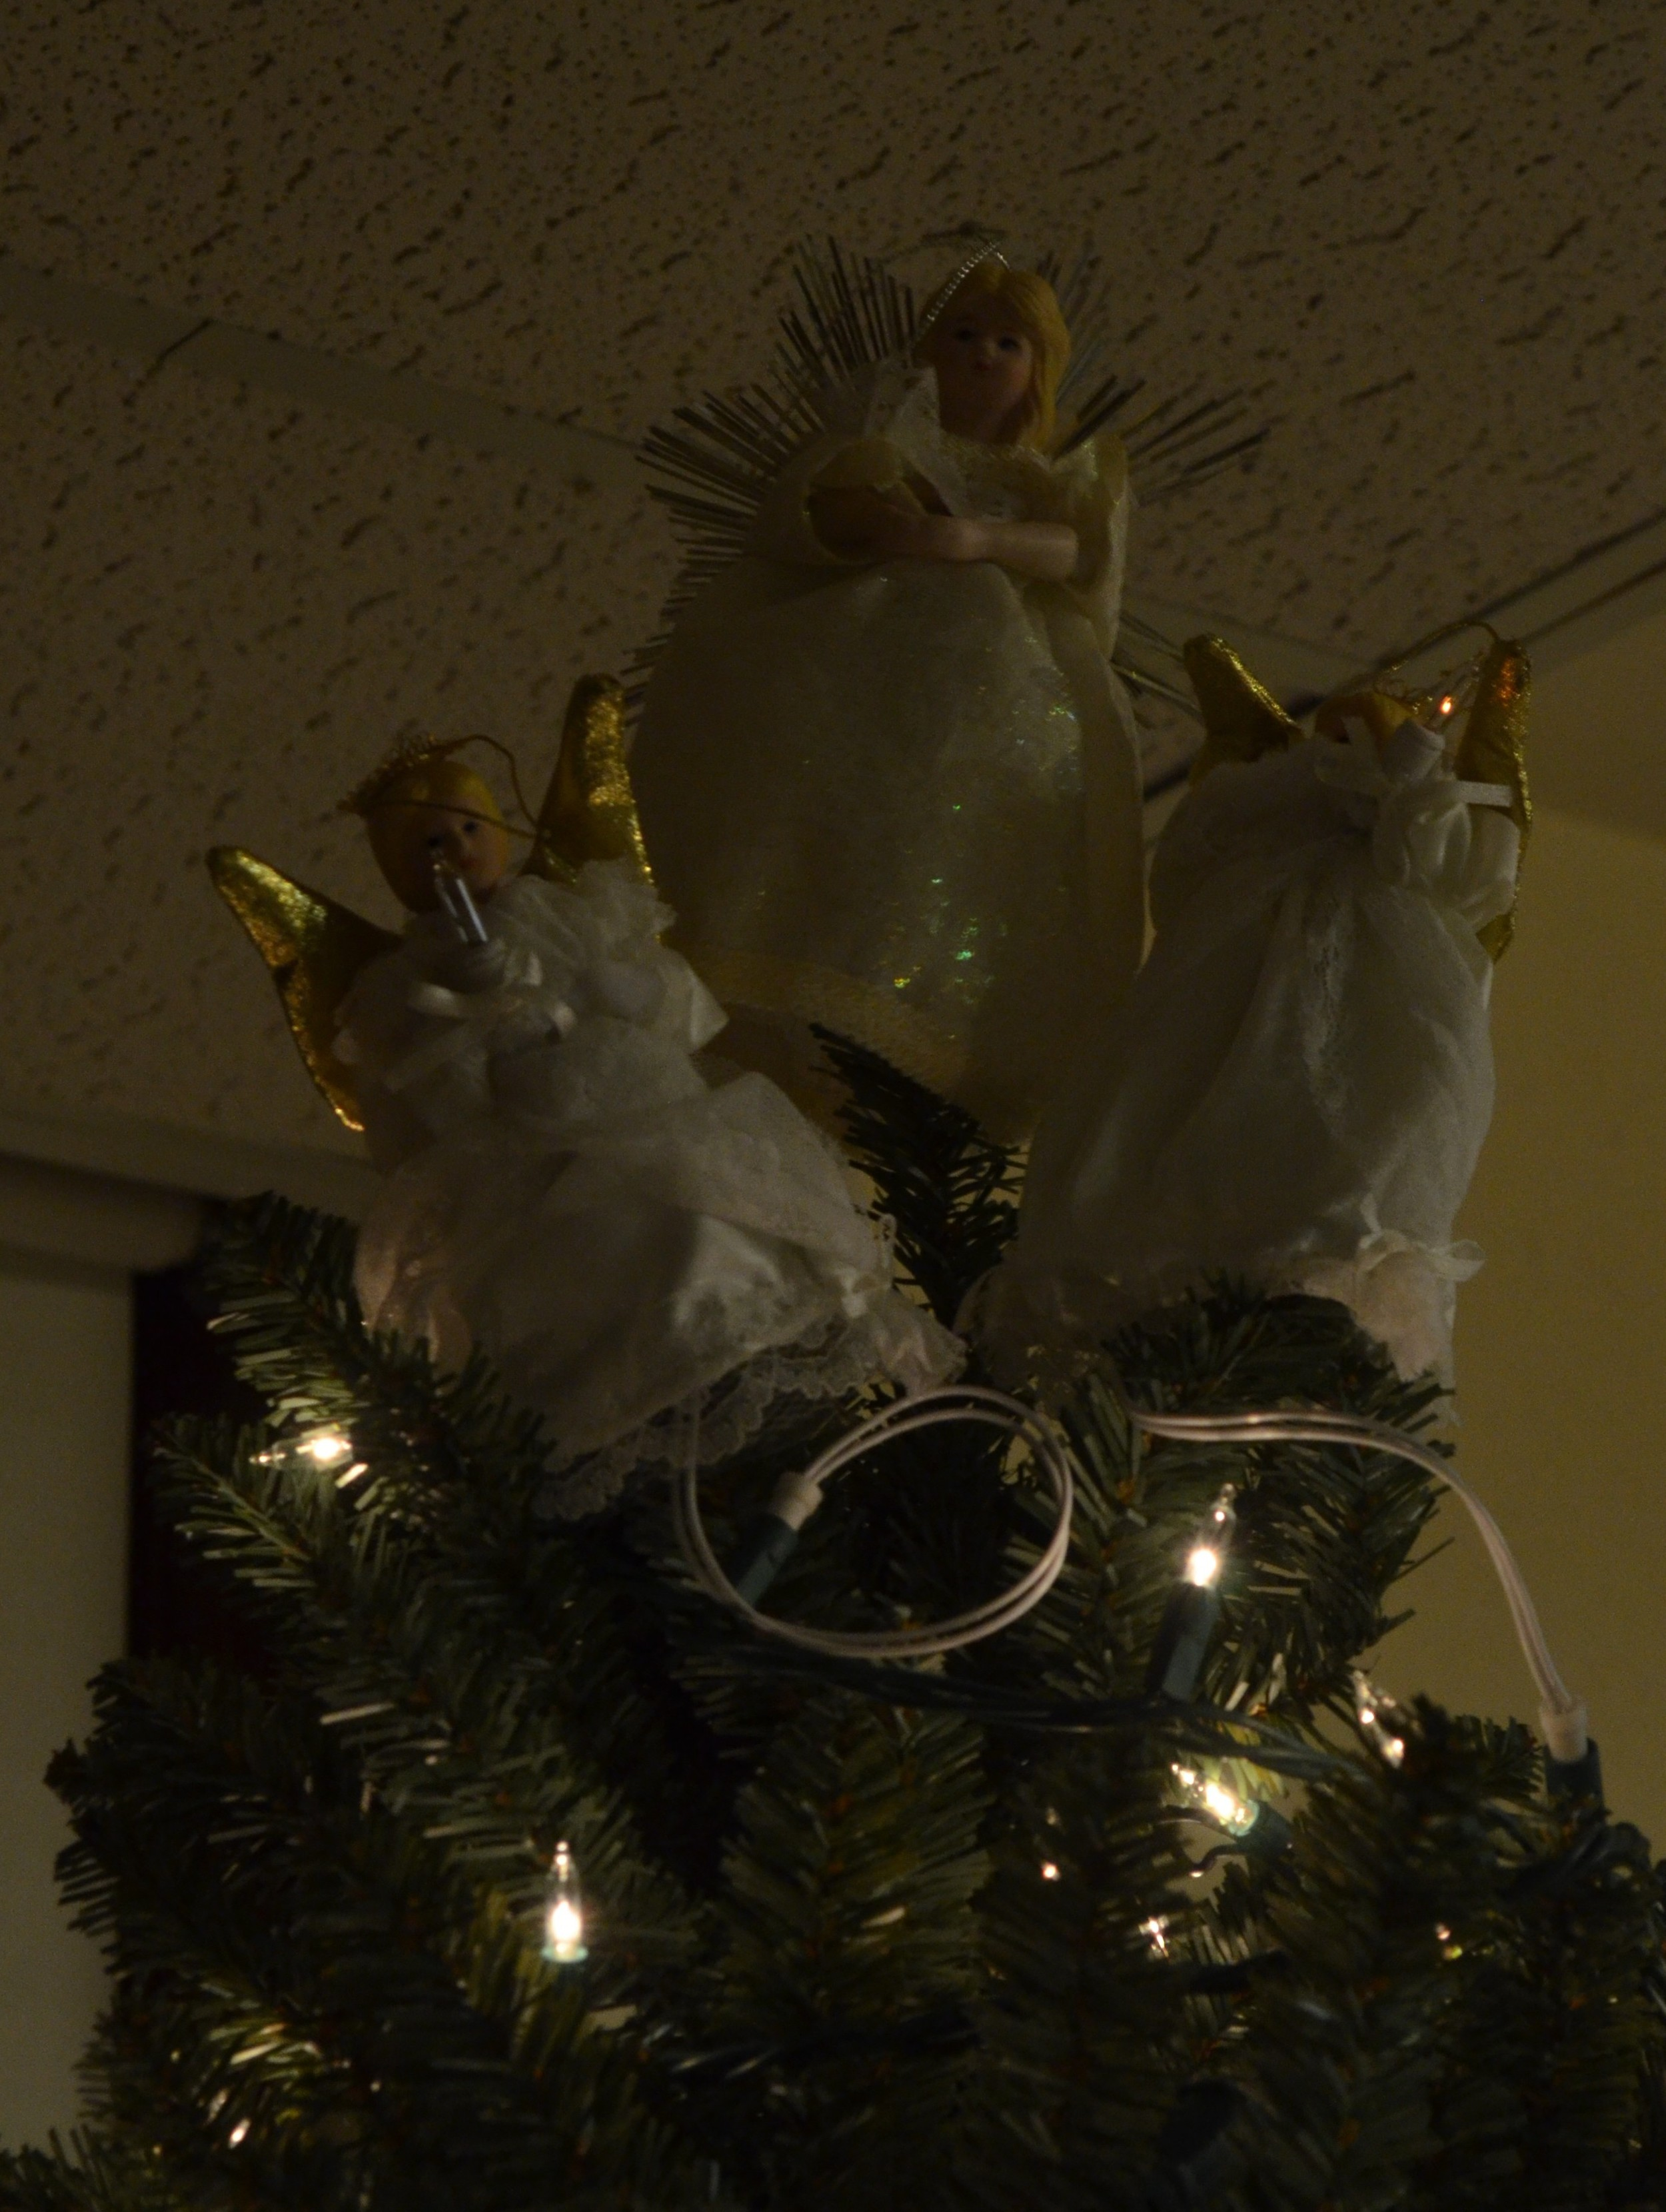 Three angels?!  No, it's a creative representation of the Trinity!